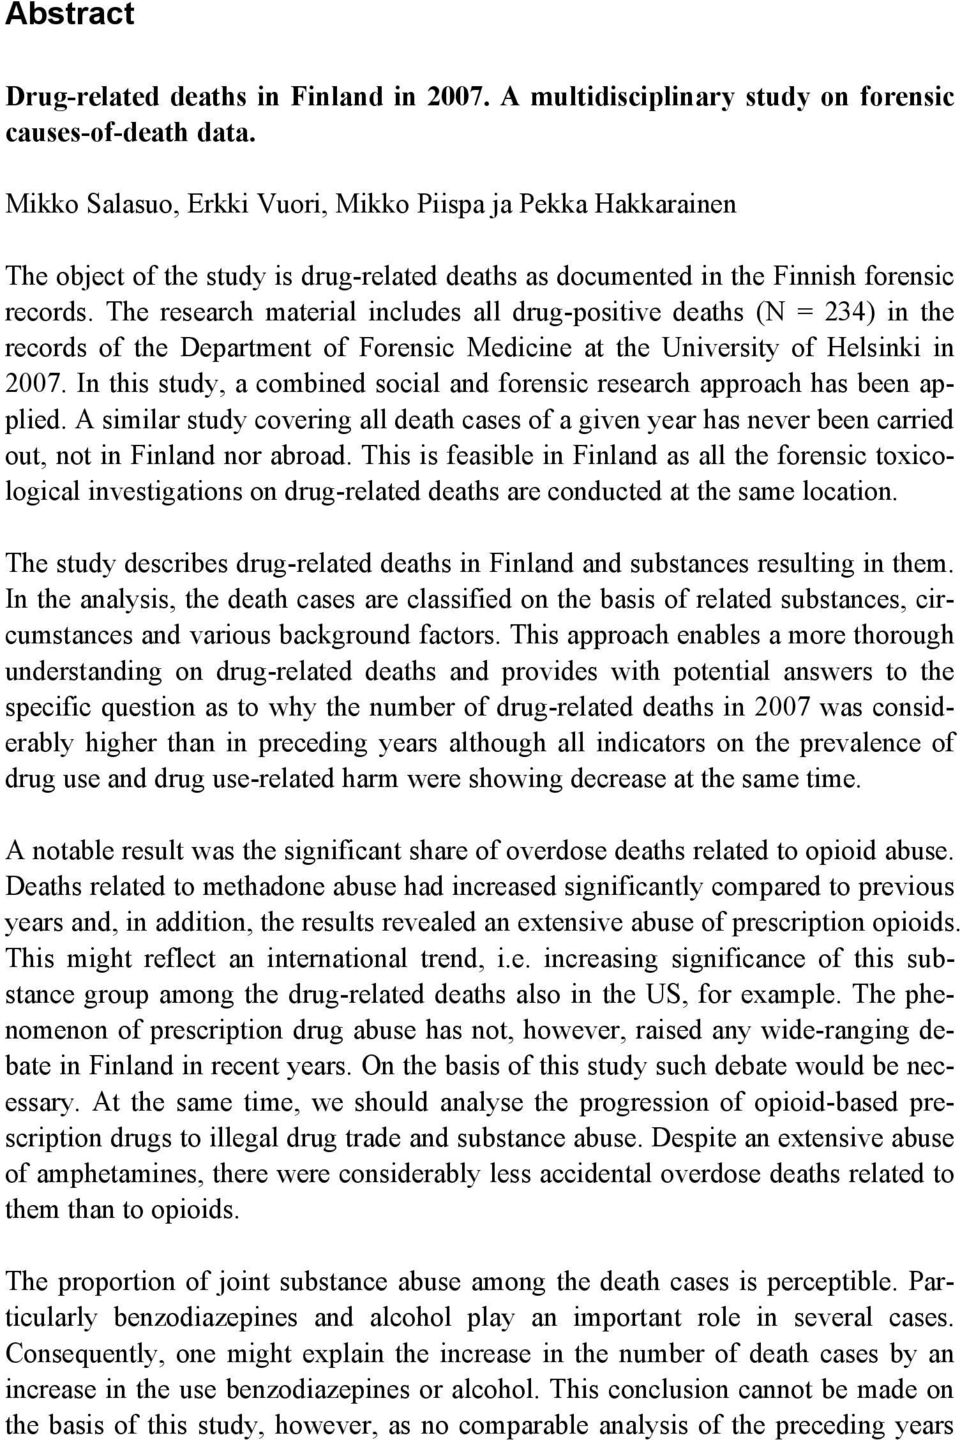 The research material includes all drug-positive deaths (N = 234) in the records of the Department of Forensic Medicine at the University of Helsinki in 2007.